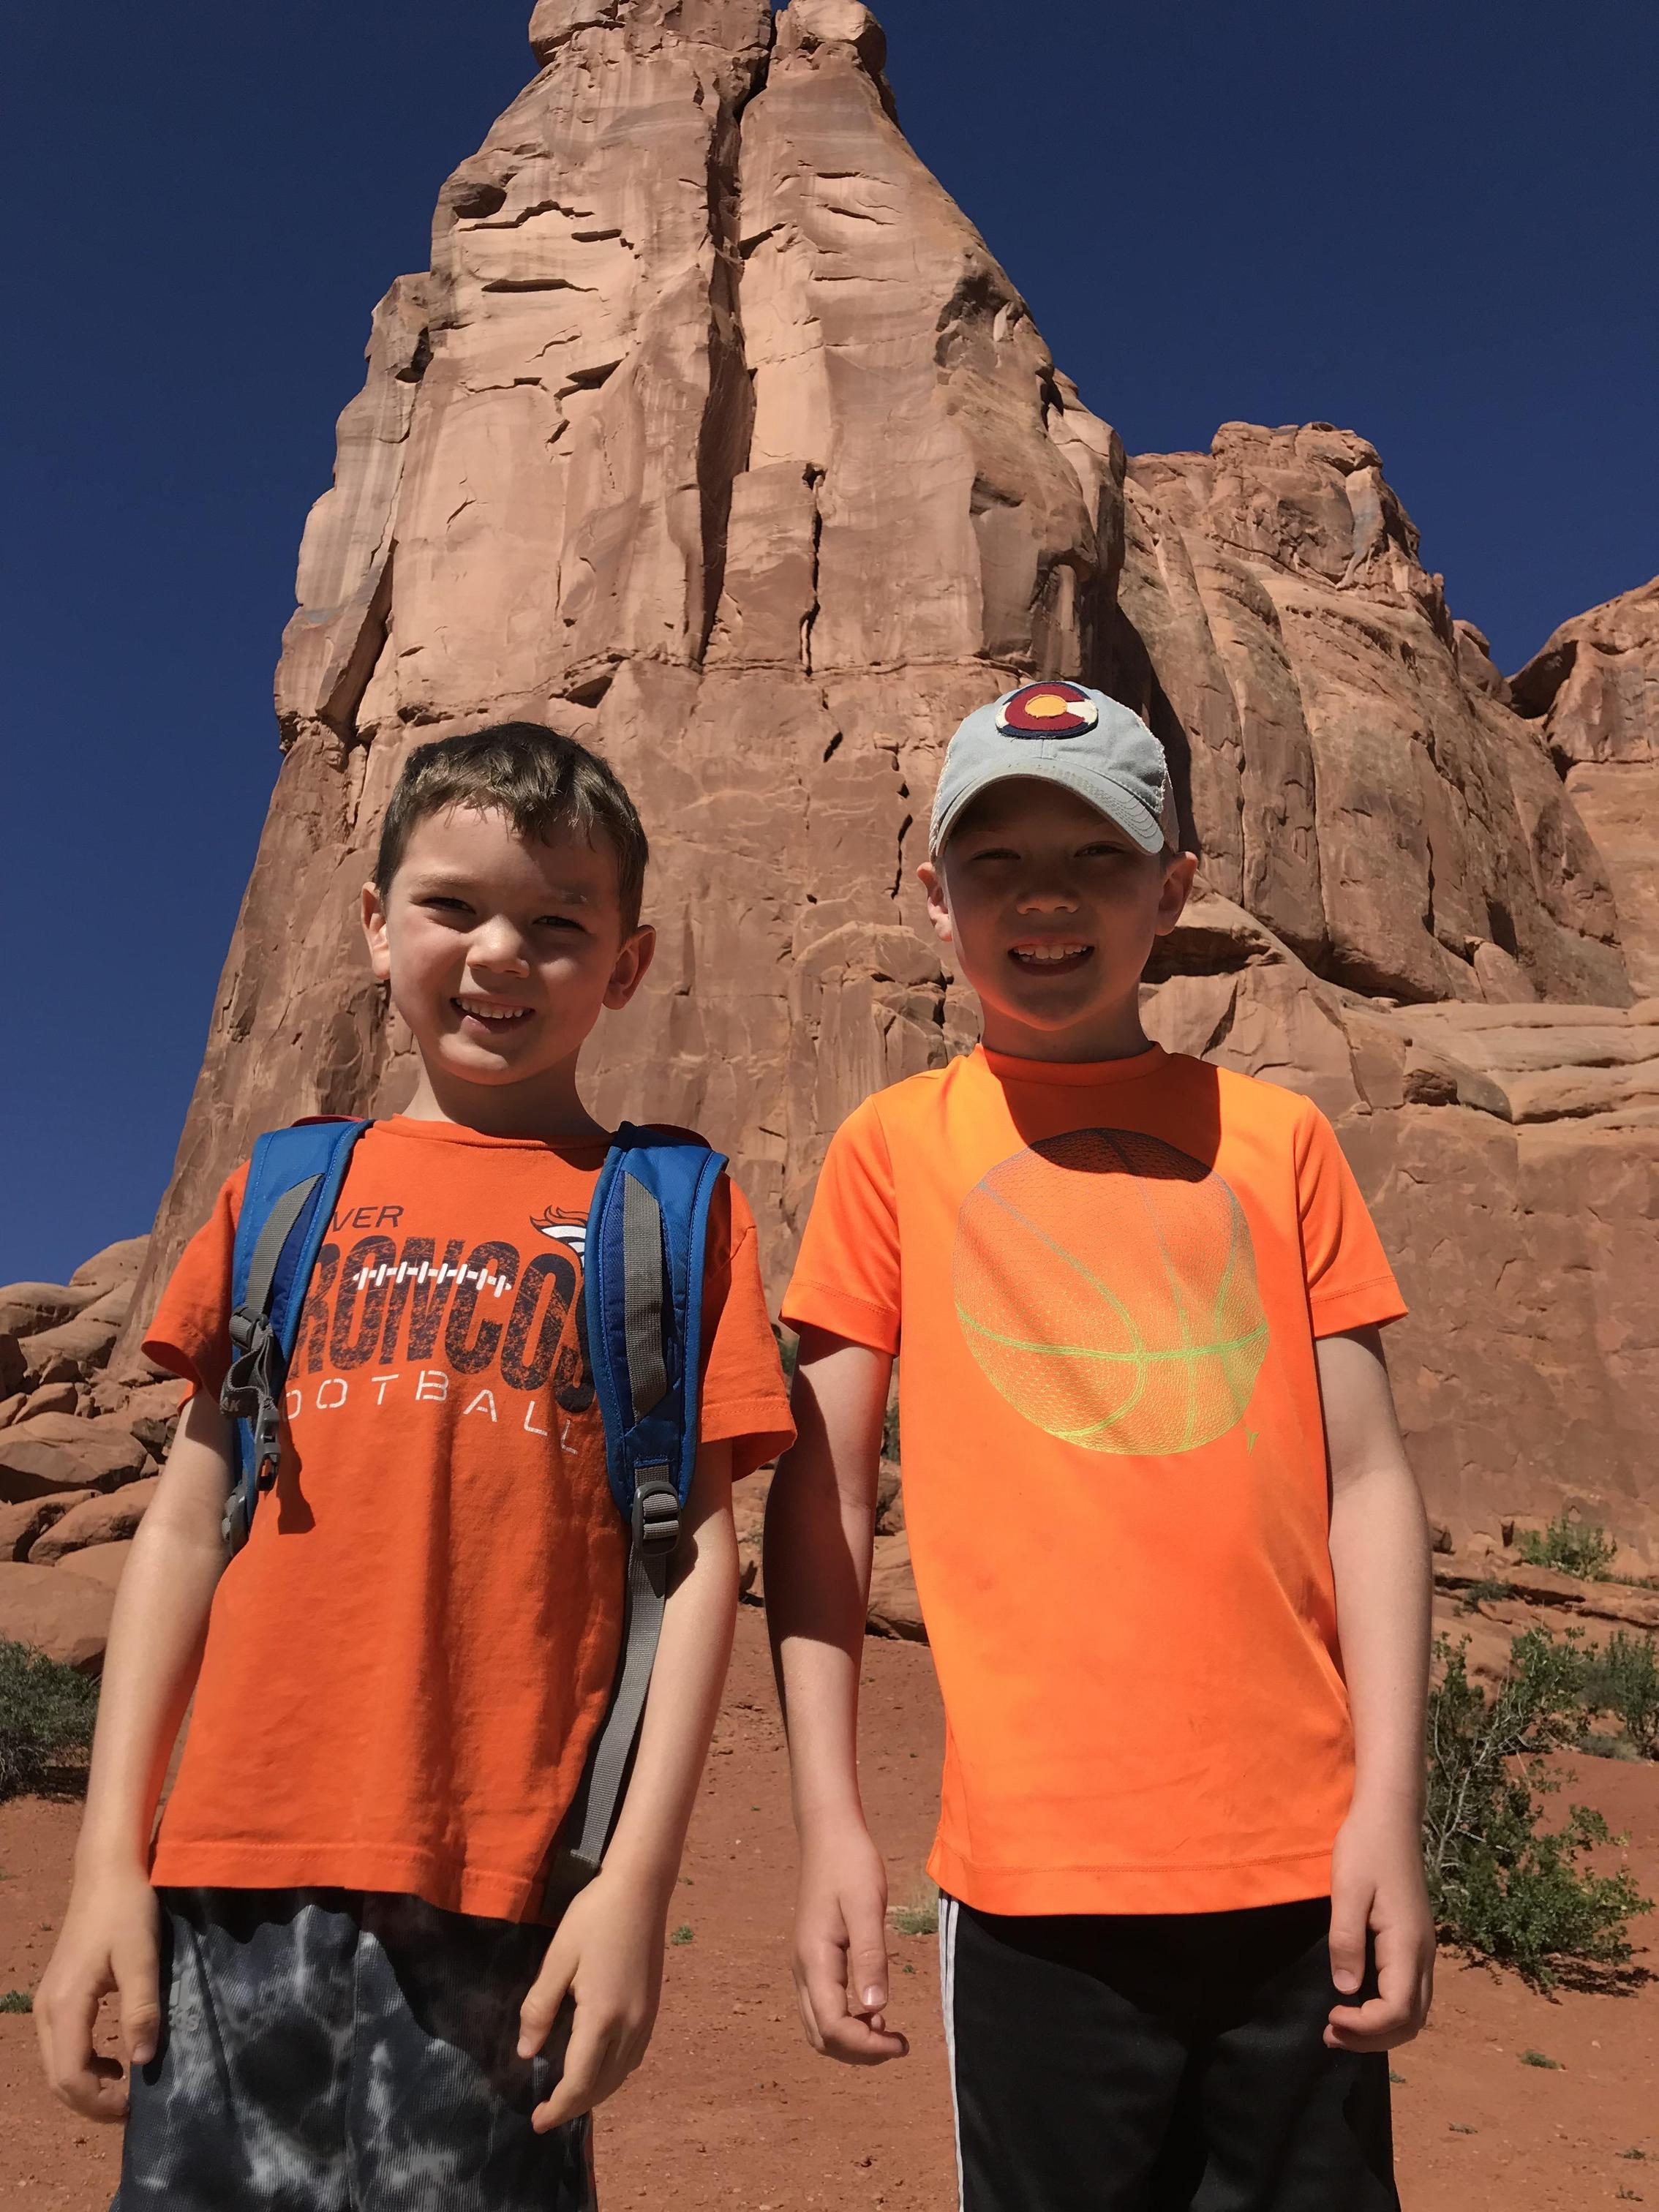 Arches NP was one of our favorites!